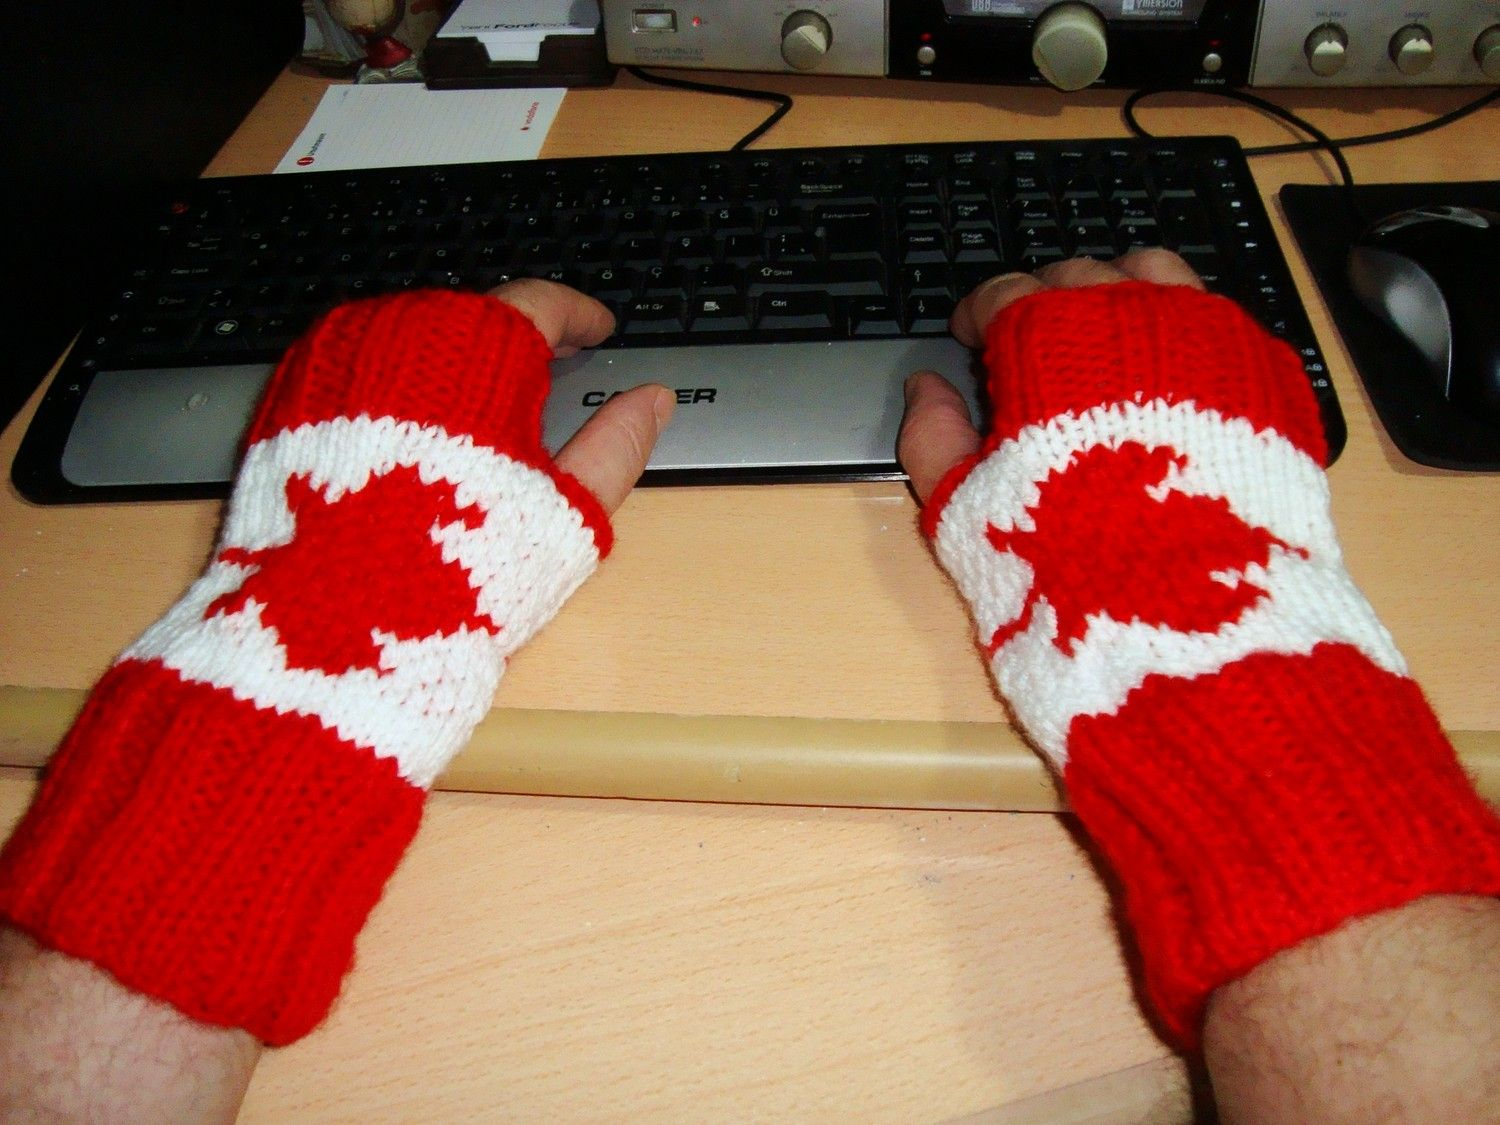 Fingerless gloves canada - Knit Canadian Flag Fingerless Gloves For Mens Gloves Fingerless Winter Accessories For Mens Gift Canada Gift For Boss